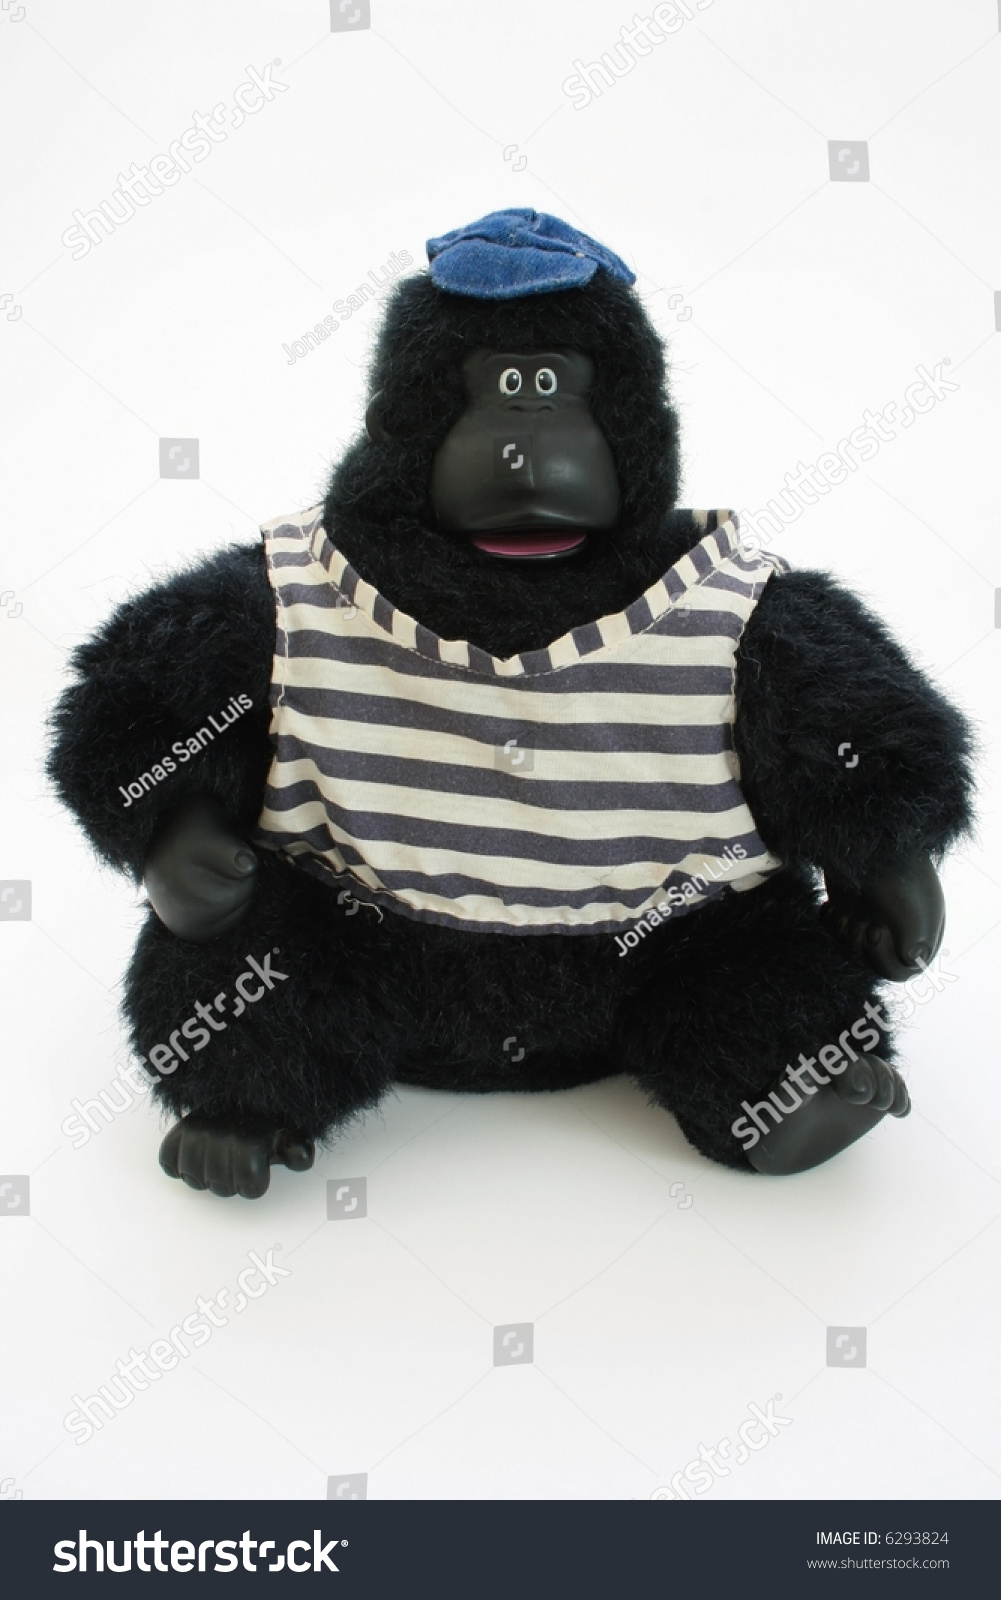 Dressed Stuffed Toy Gorilla Wearing Shirt And Hat Stock ...